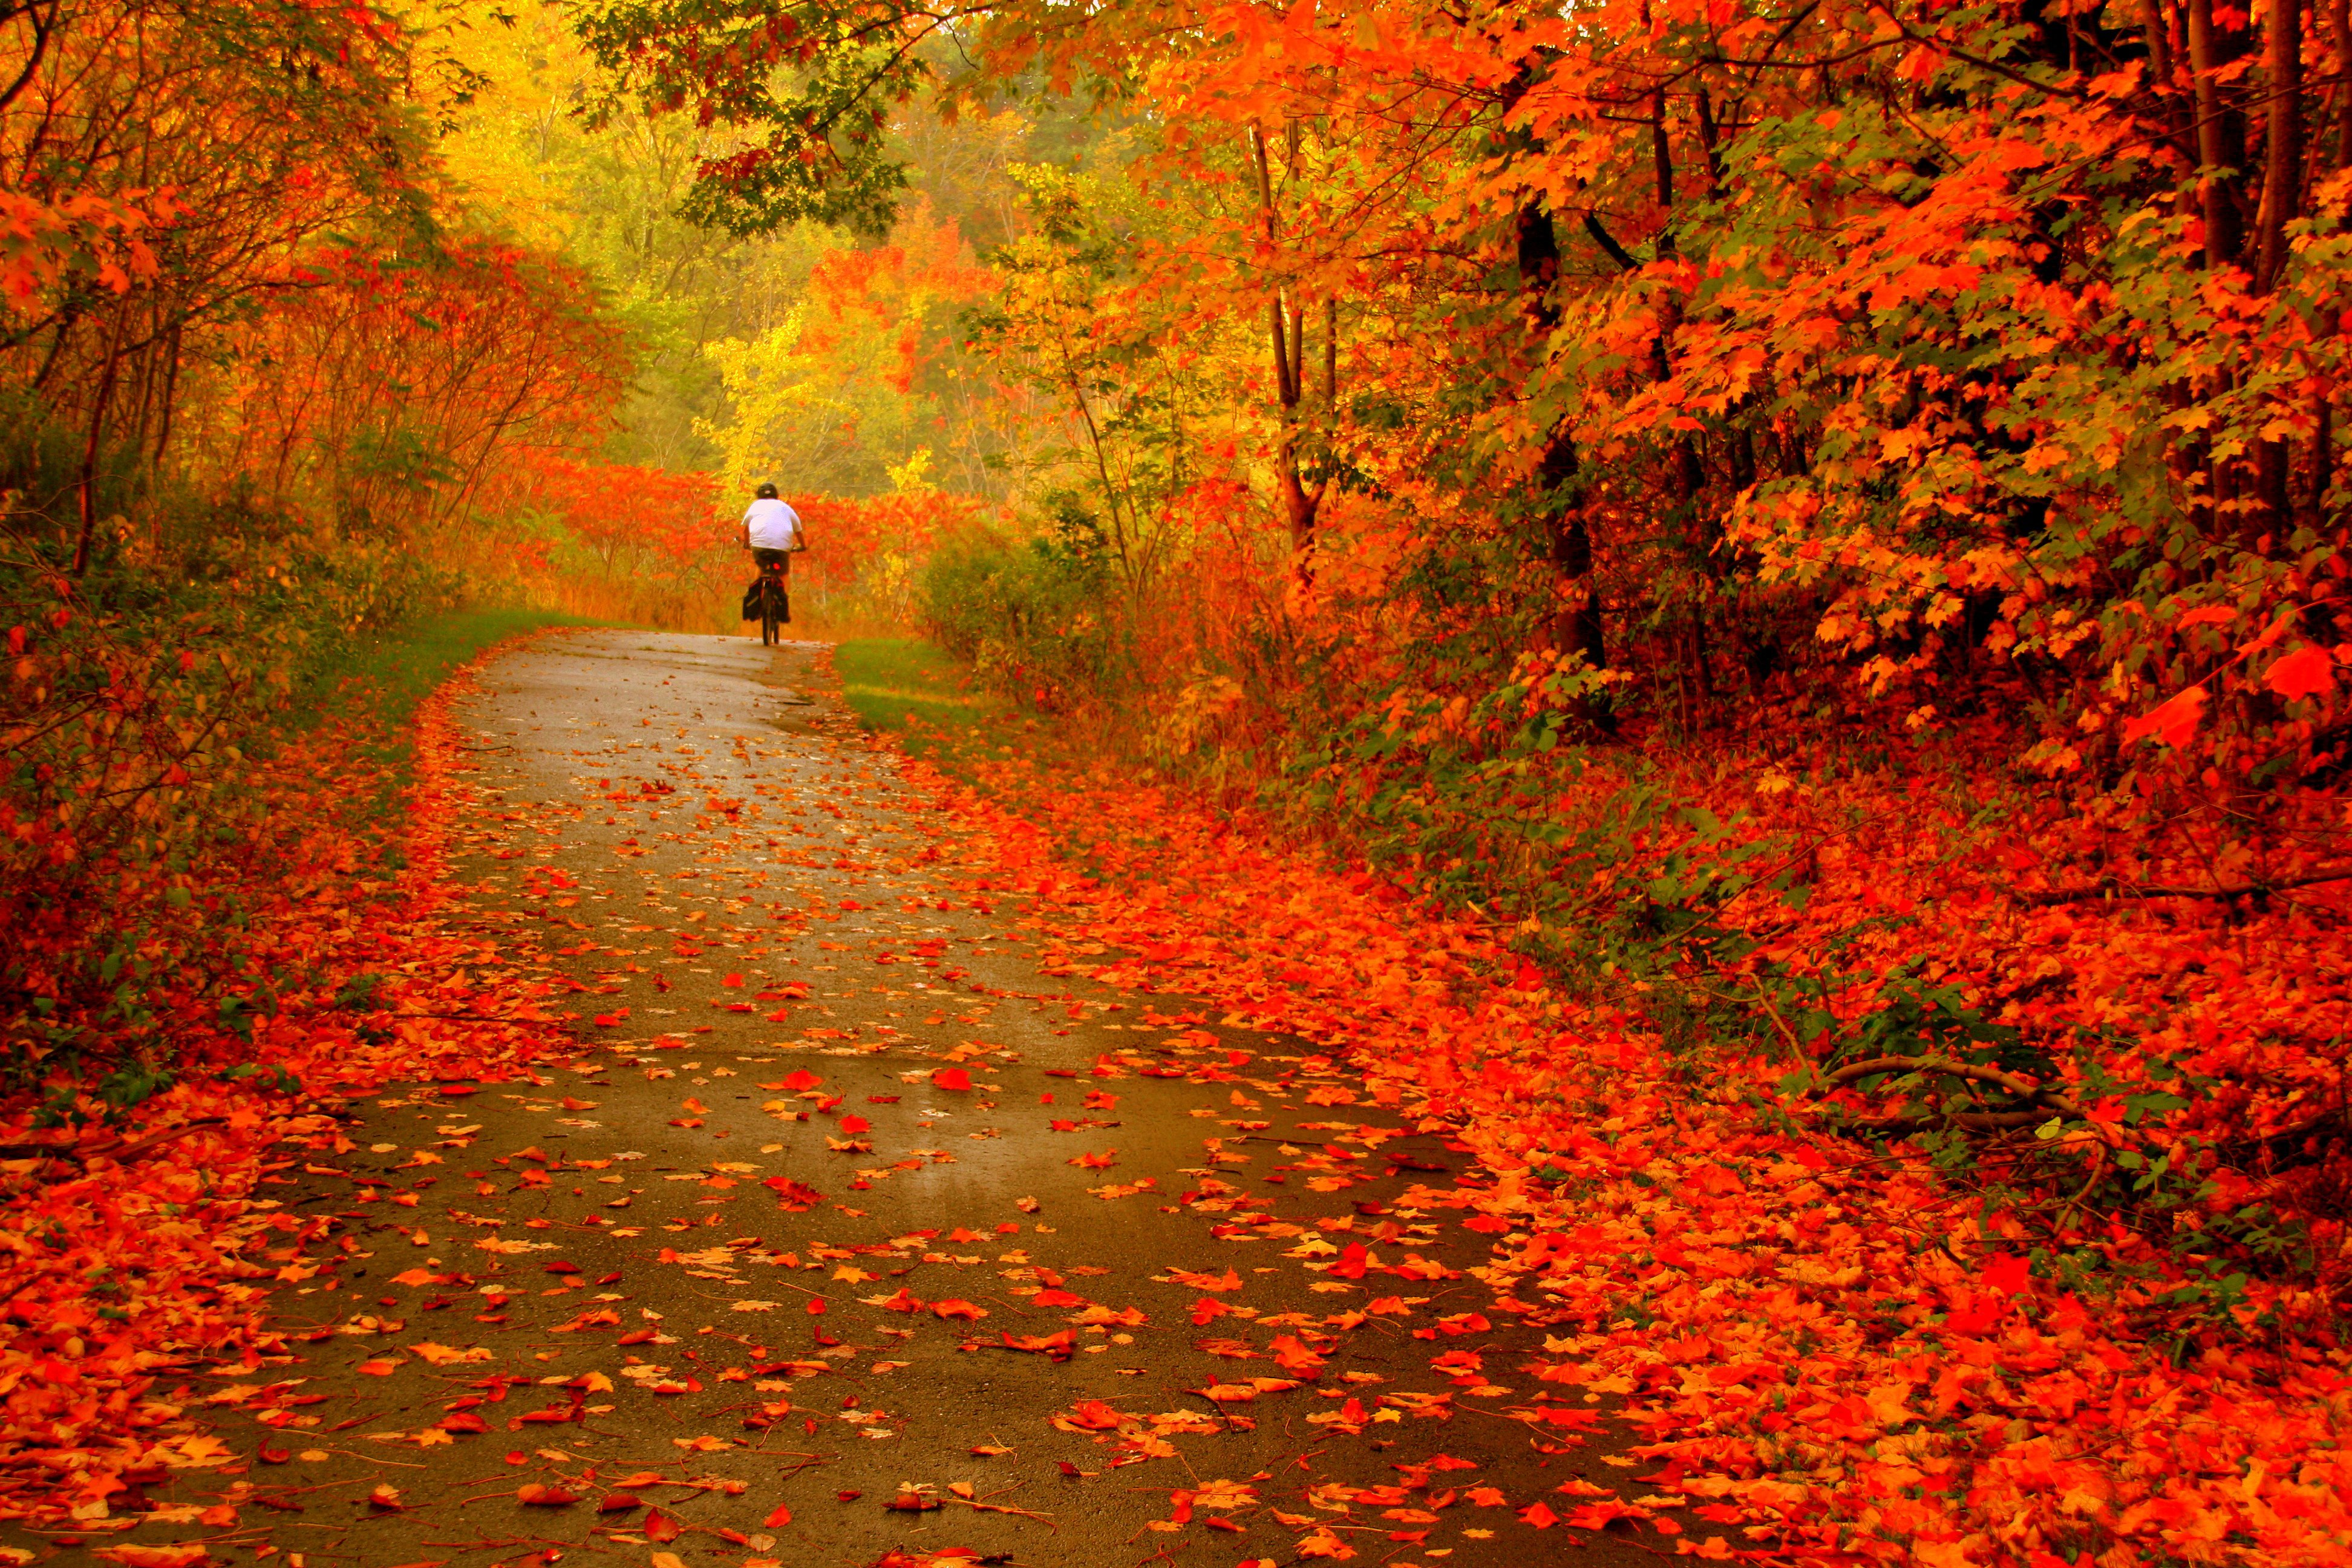 autumn forests leaves paths HD Wallpaper